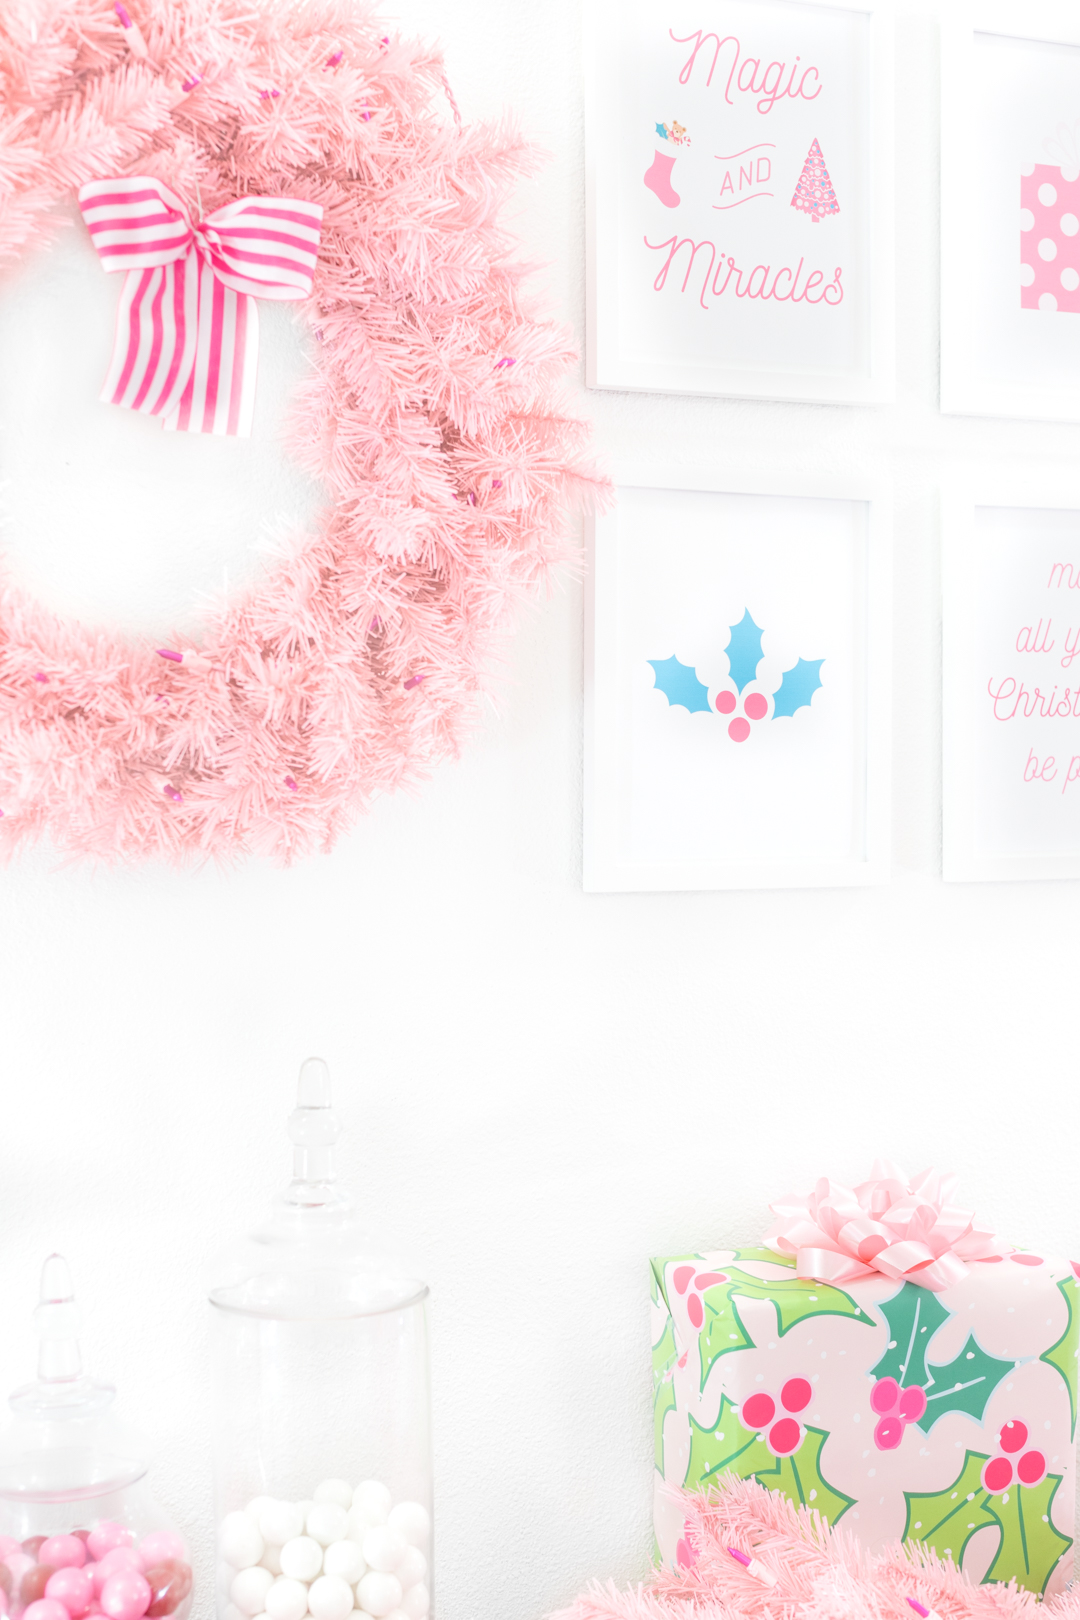 pink christmas decorations with wall art, wreath and pink garland.